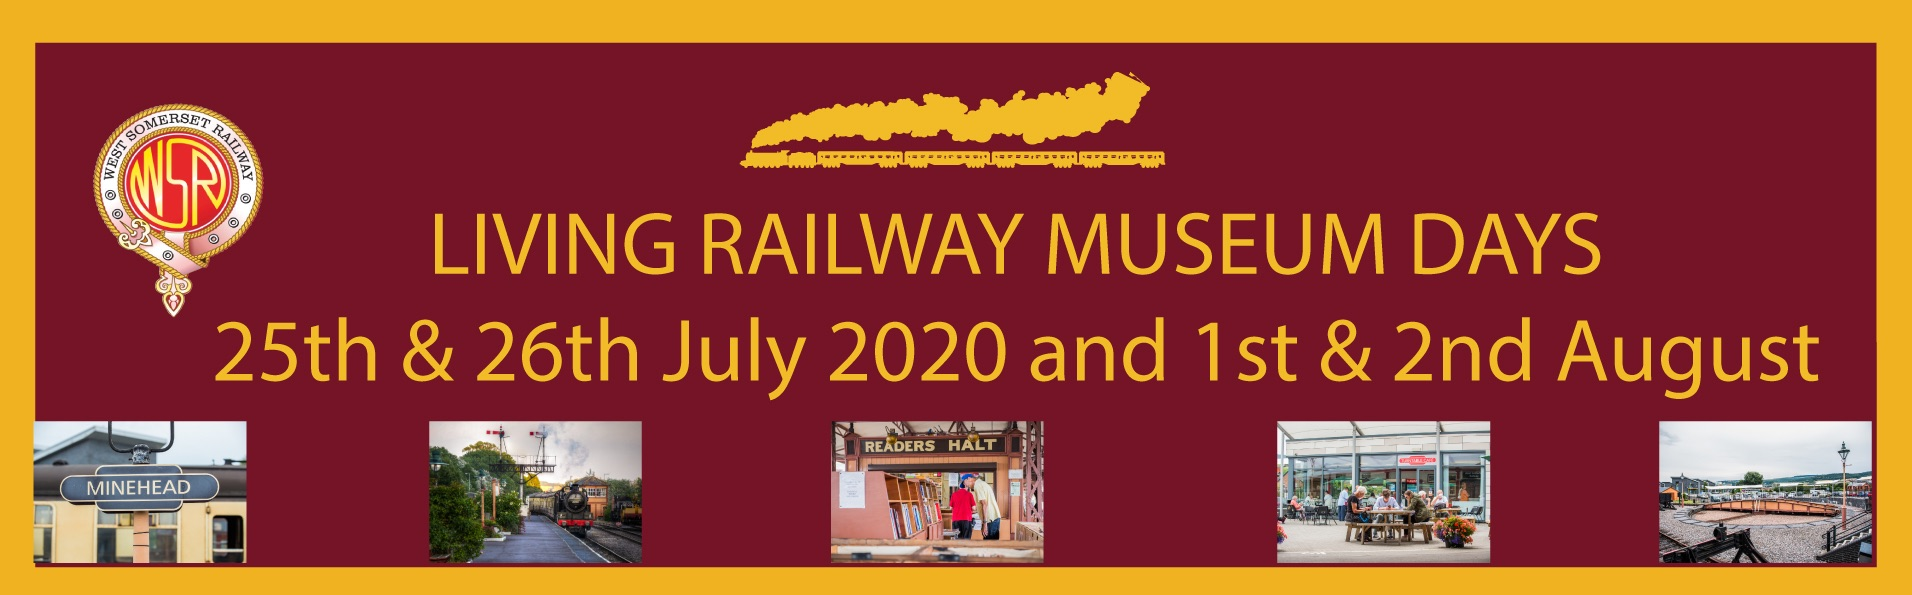 Taunton-Hotels.com | West Somerset Railway Competition